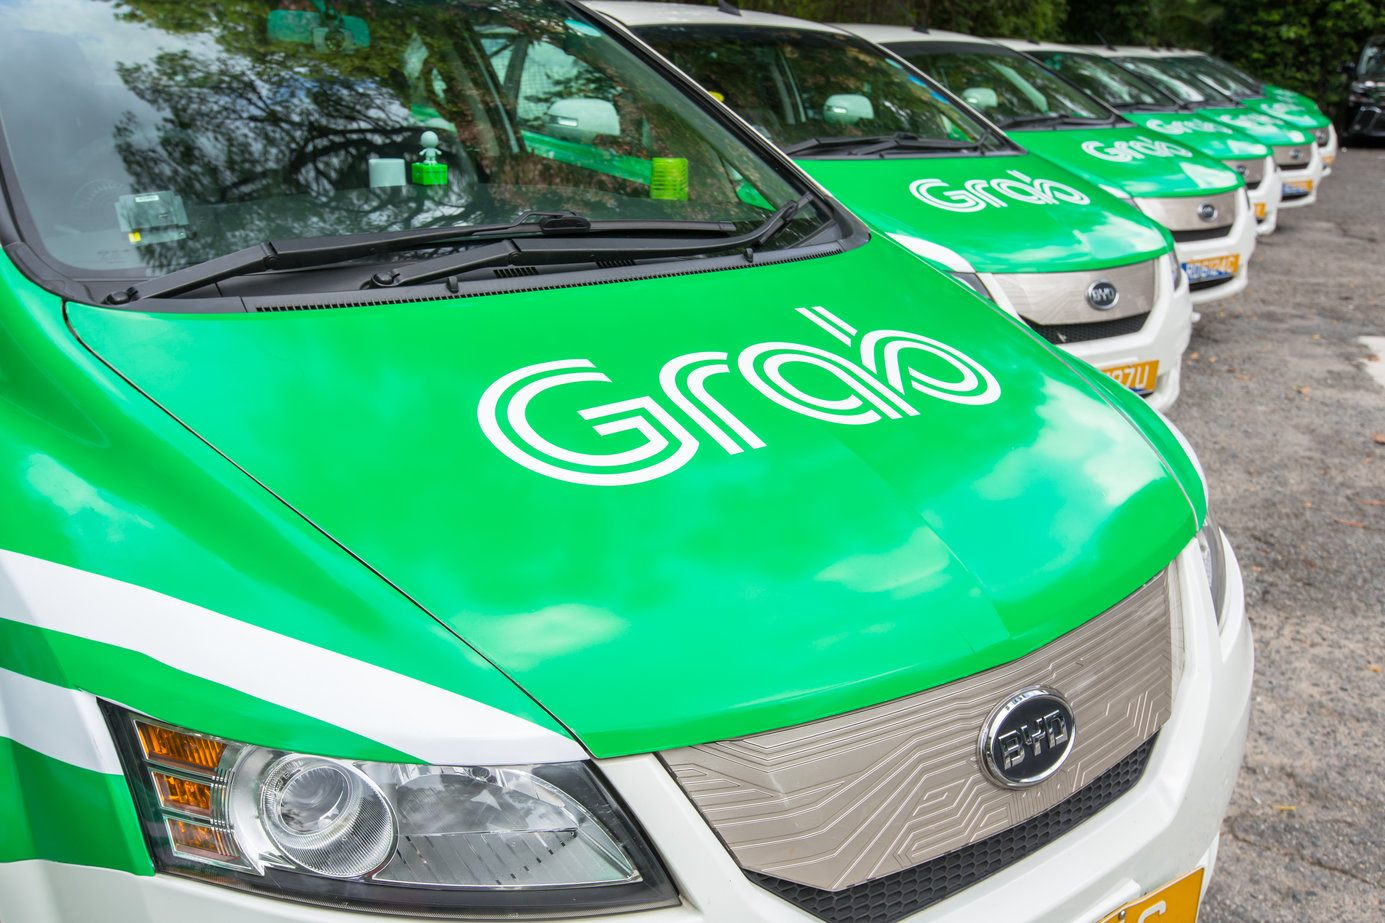 Report: Grab eyes secondary listing in Singapore after US debut